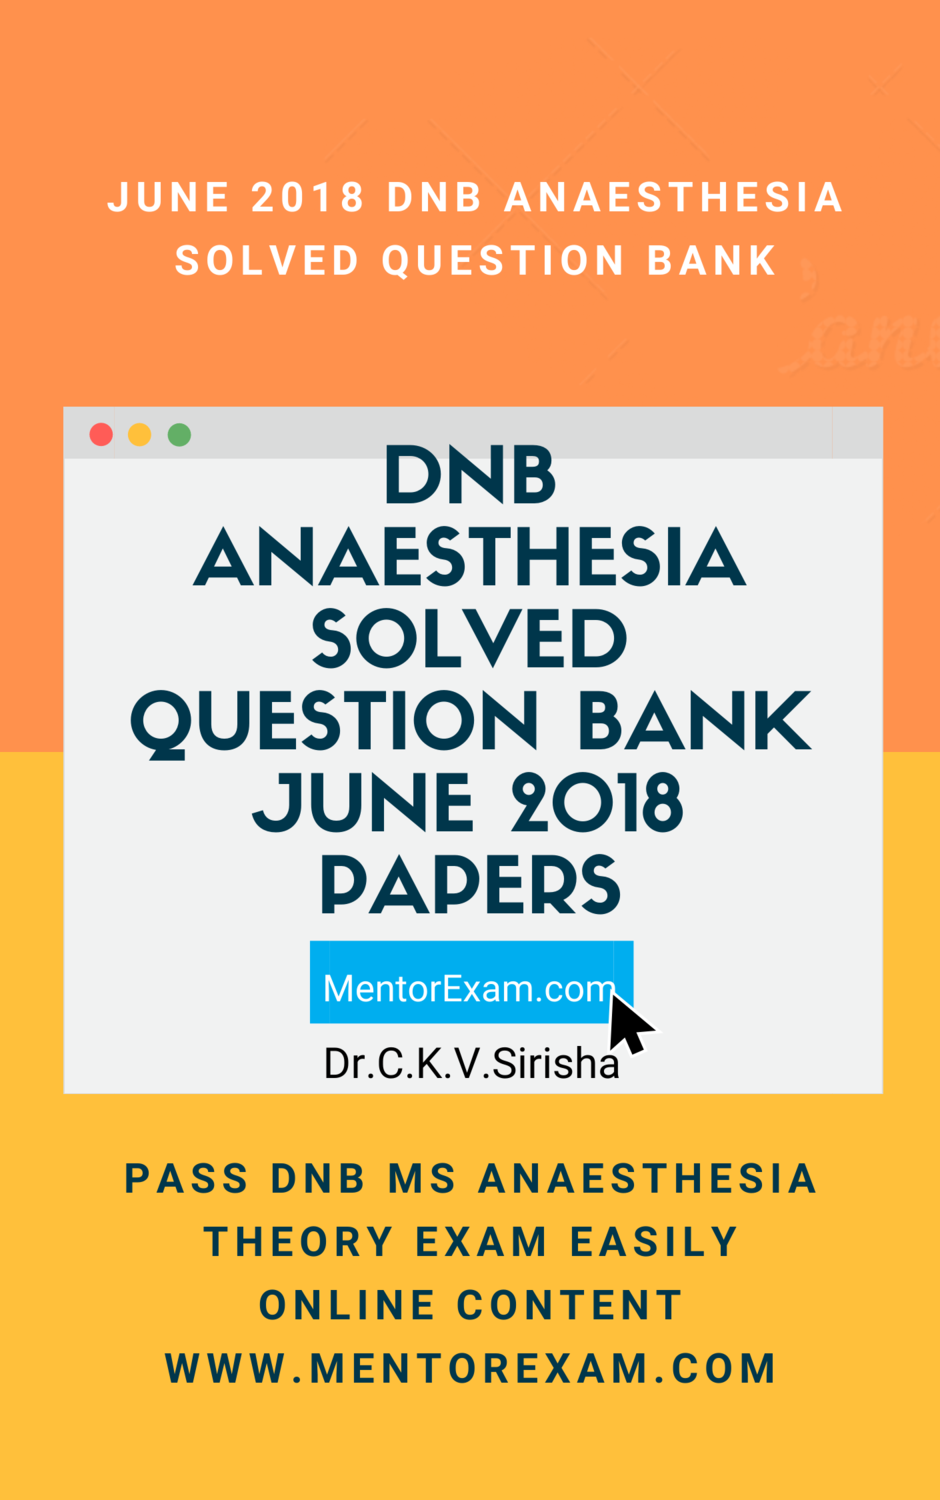 June 2018 DNB ANAESTHESIA Solved Question Bank online